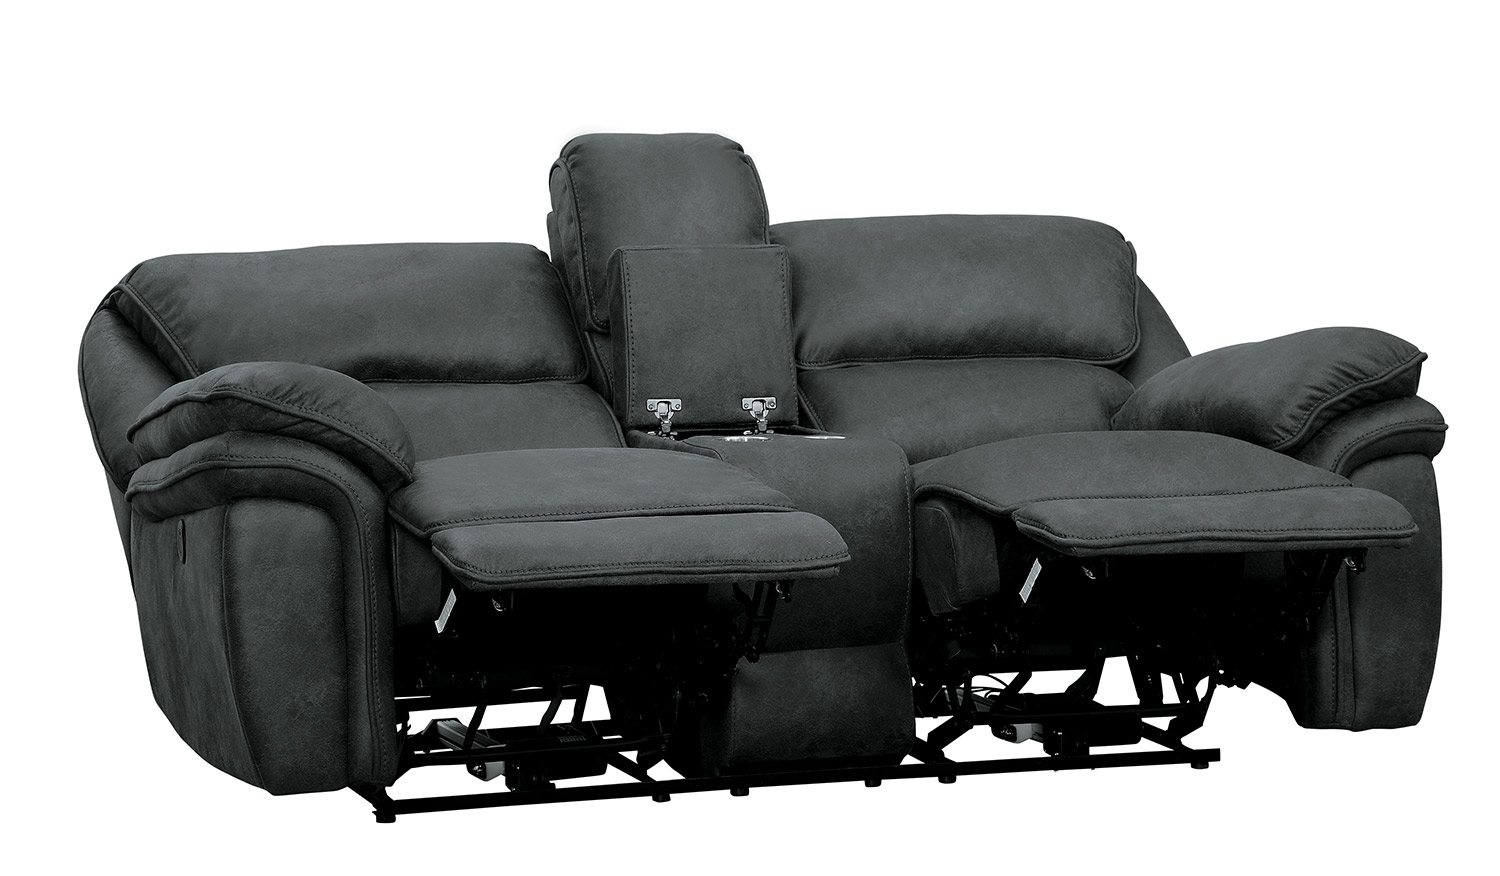 Homelegance Hadden Power Double Reclining Love Seat With Center Console - Gray